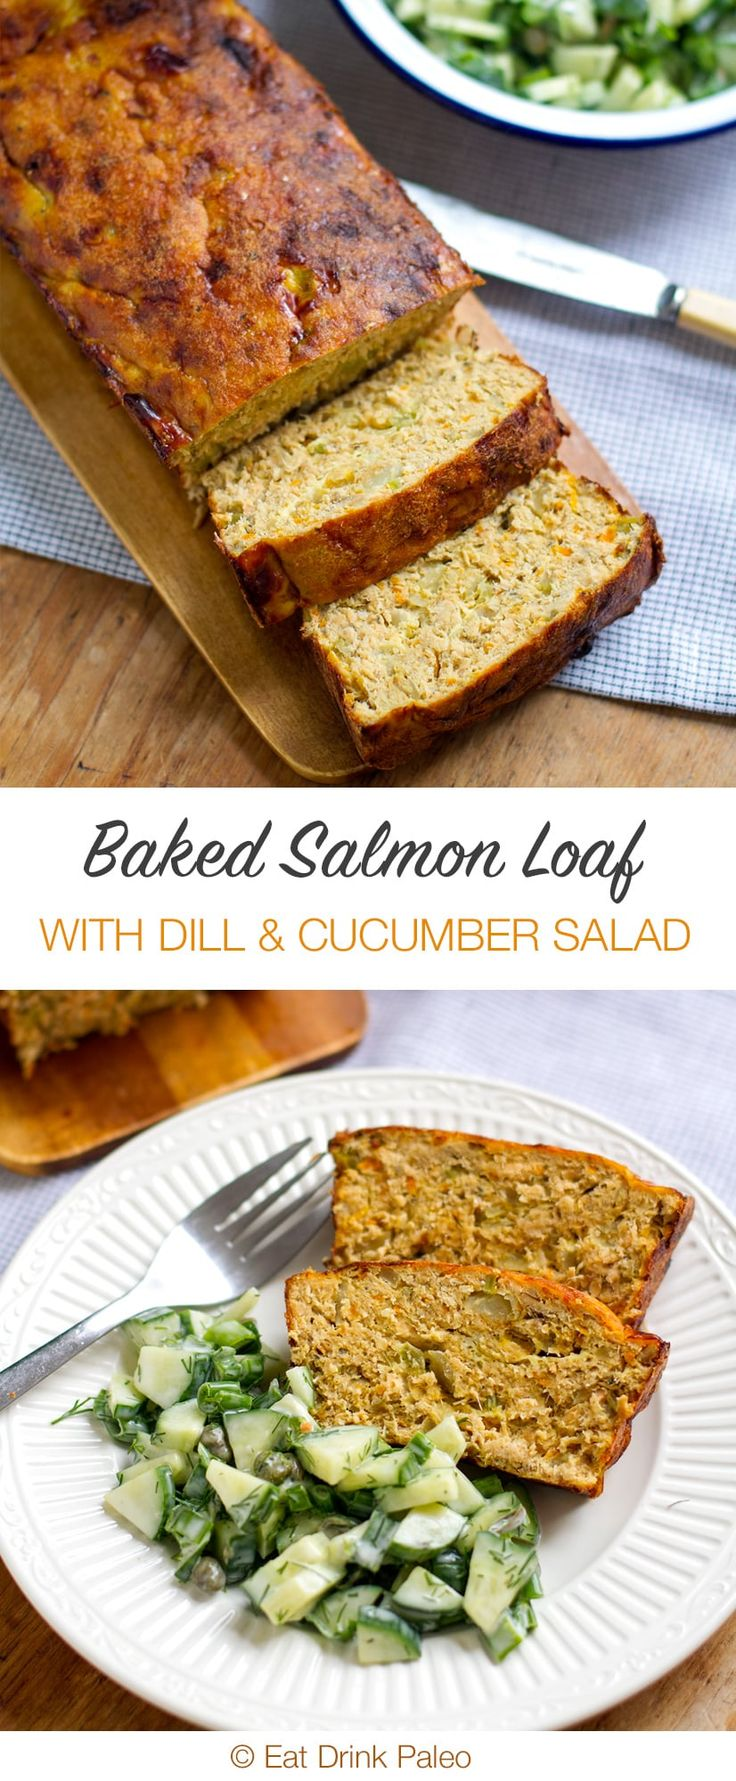 Baked salmon loaf with dill and cucumber salad this loaf is made